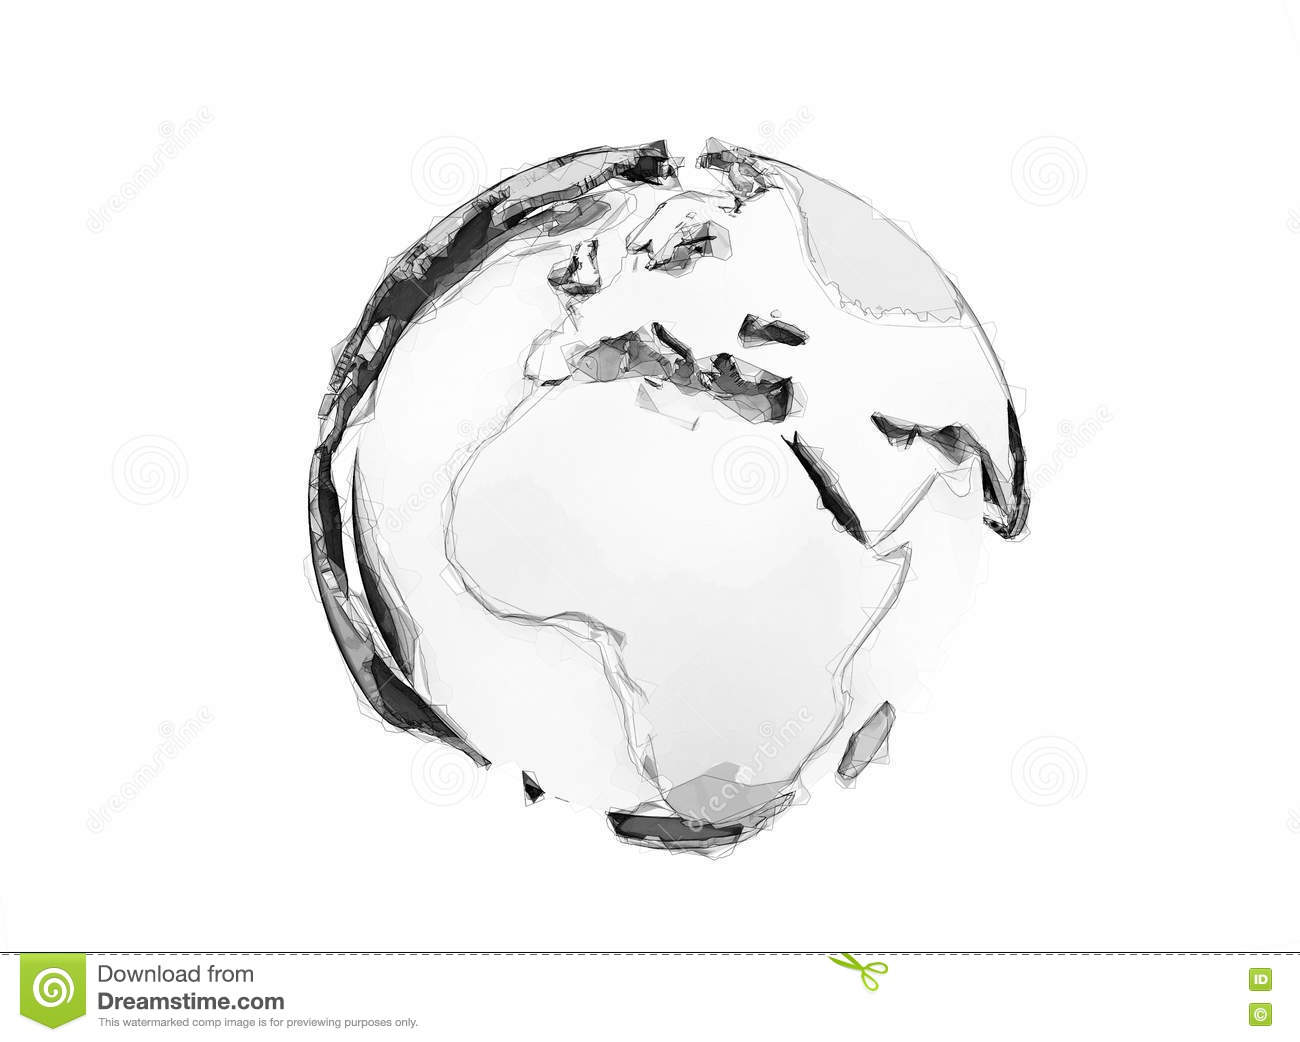 3d world globe digital pencil sketch